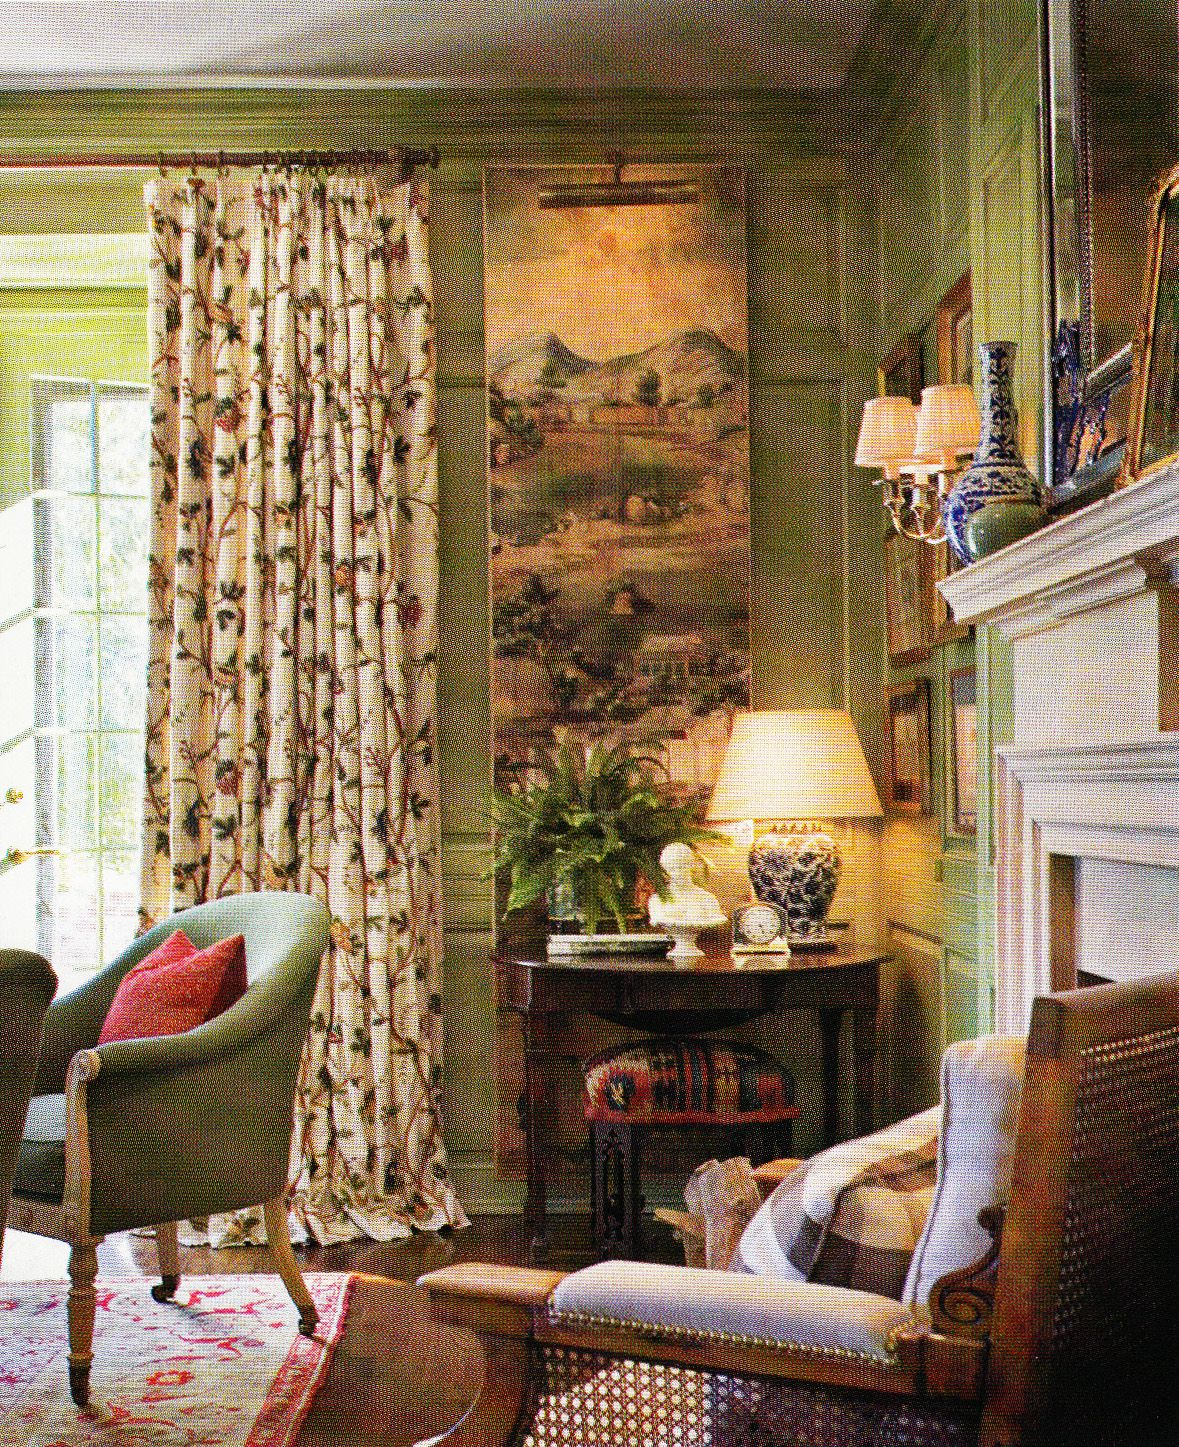 Home Interior Design Decor English Cottage Home Decor: A Tudor-Style House In Los Angeles Offers Scenic Views And Warm Interiors